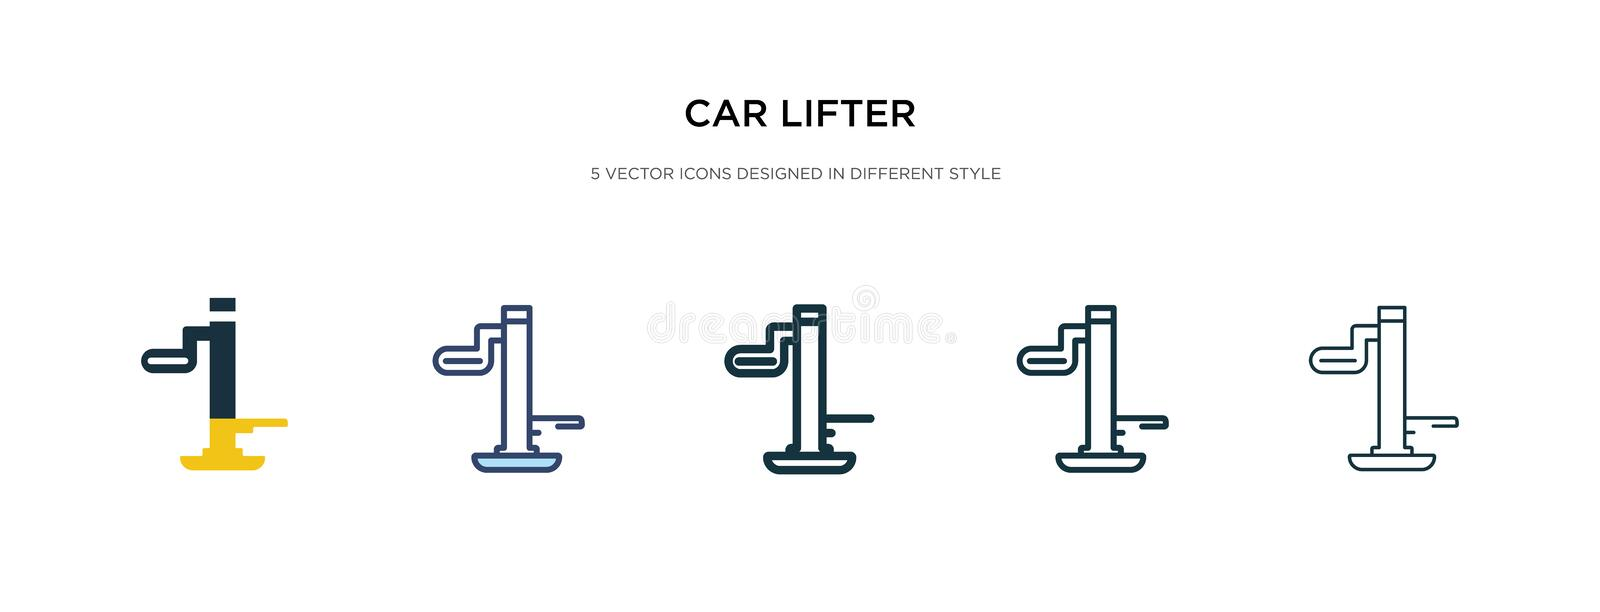 Car lifter icon in different style vector illustration. two colored and black car lifter vector icons designed in filled, outline vector illustration